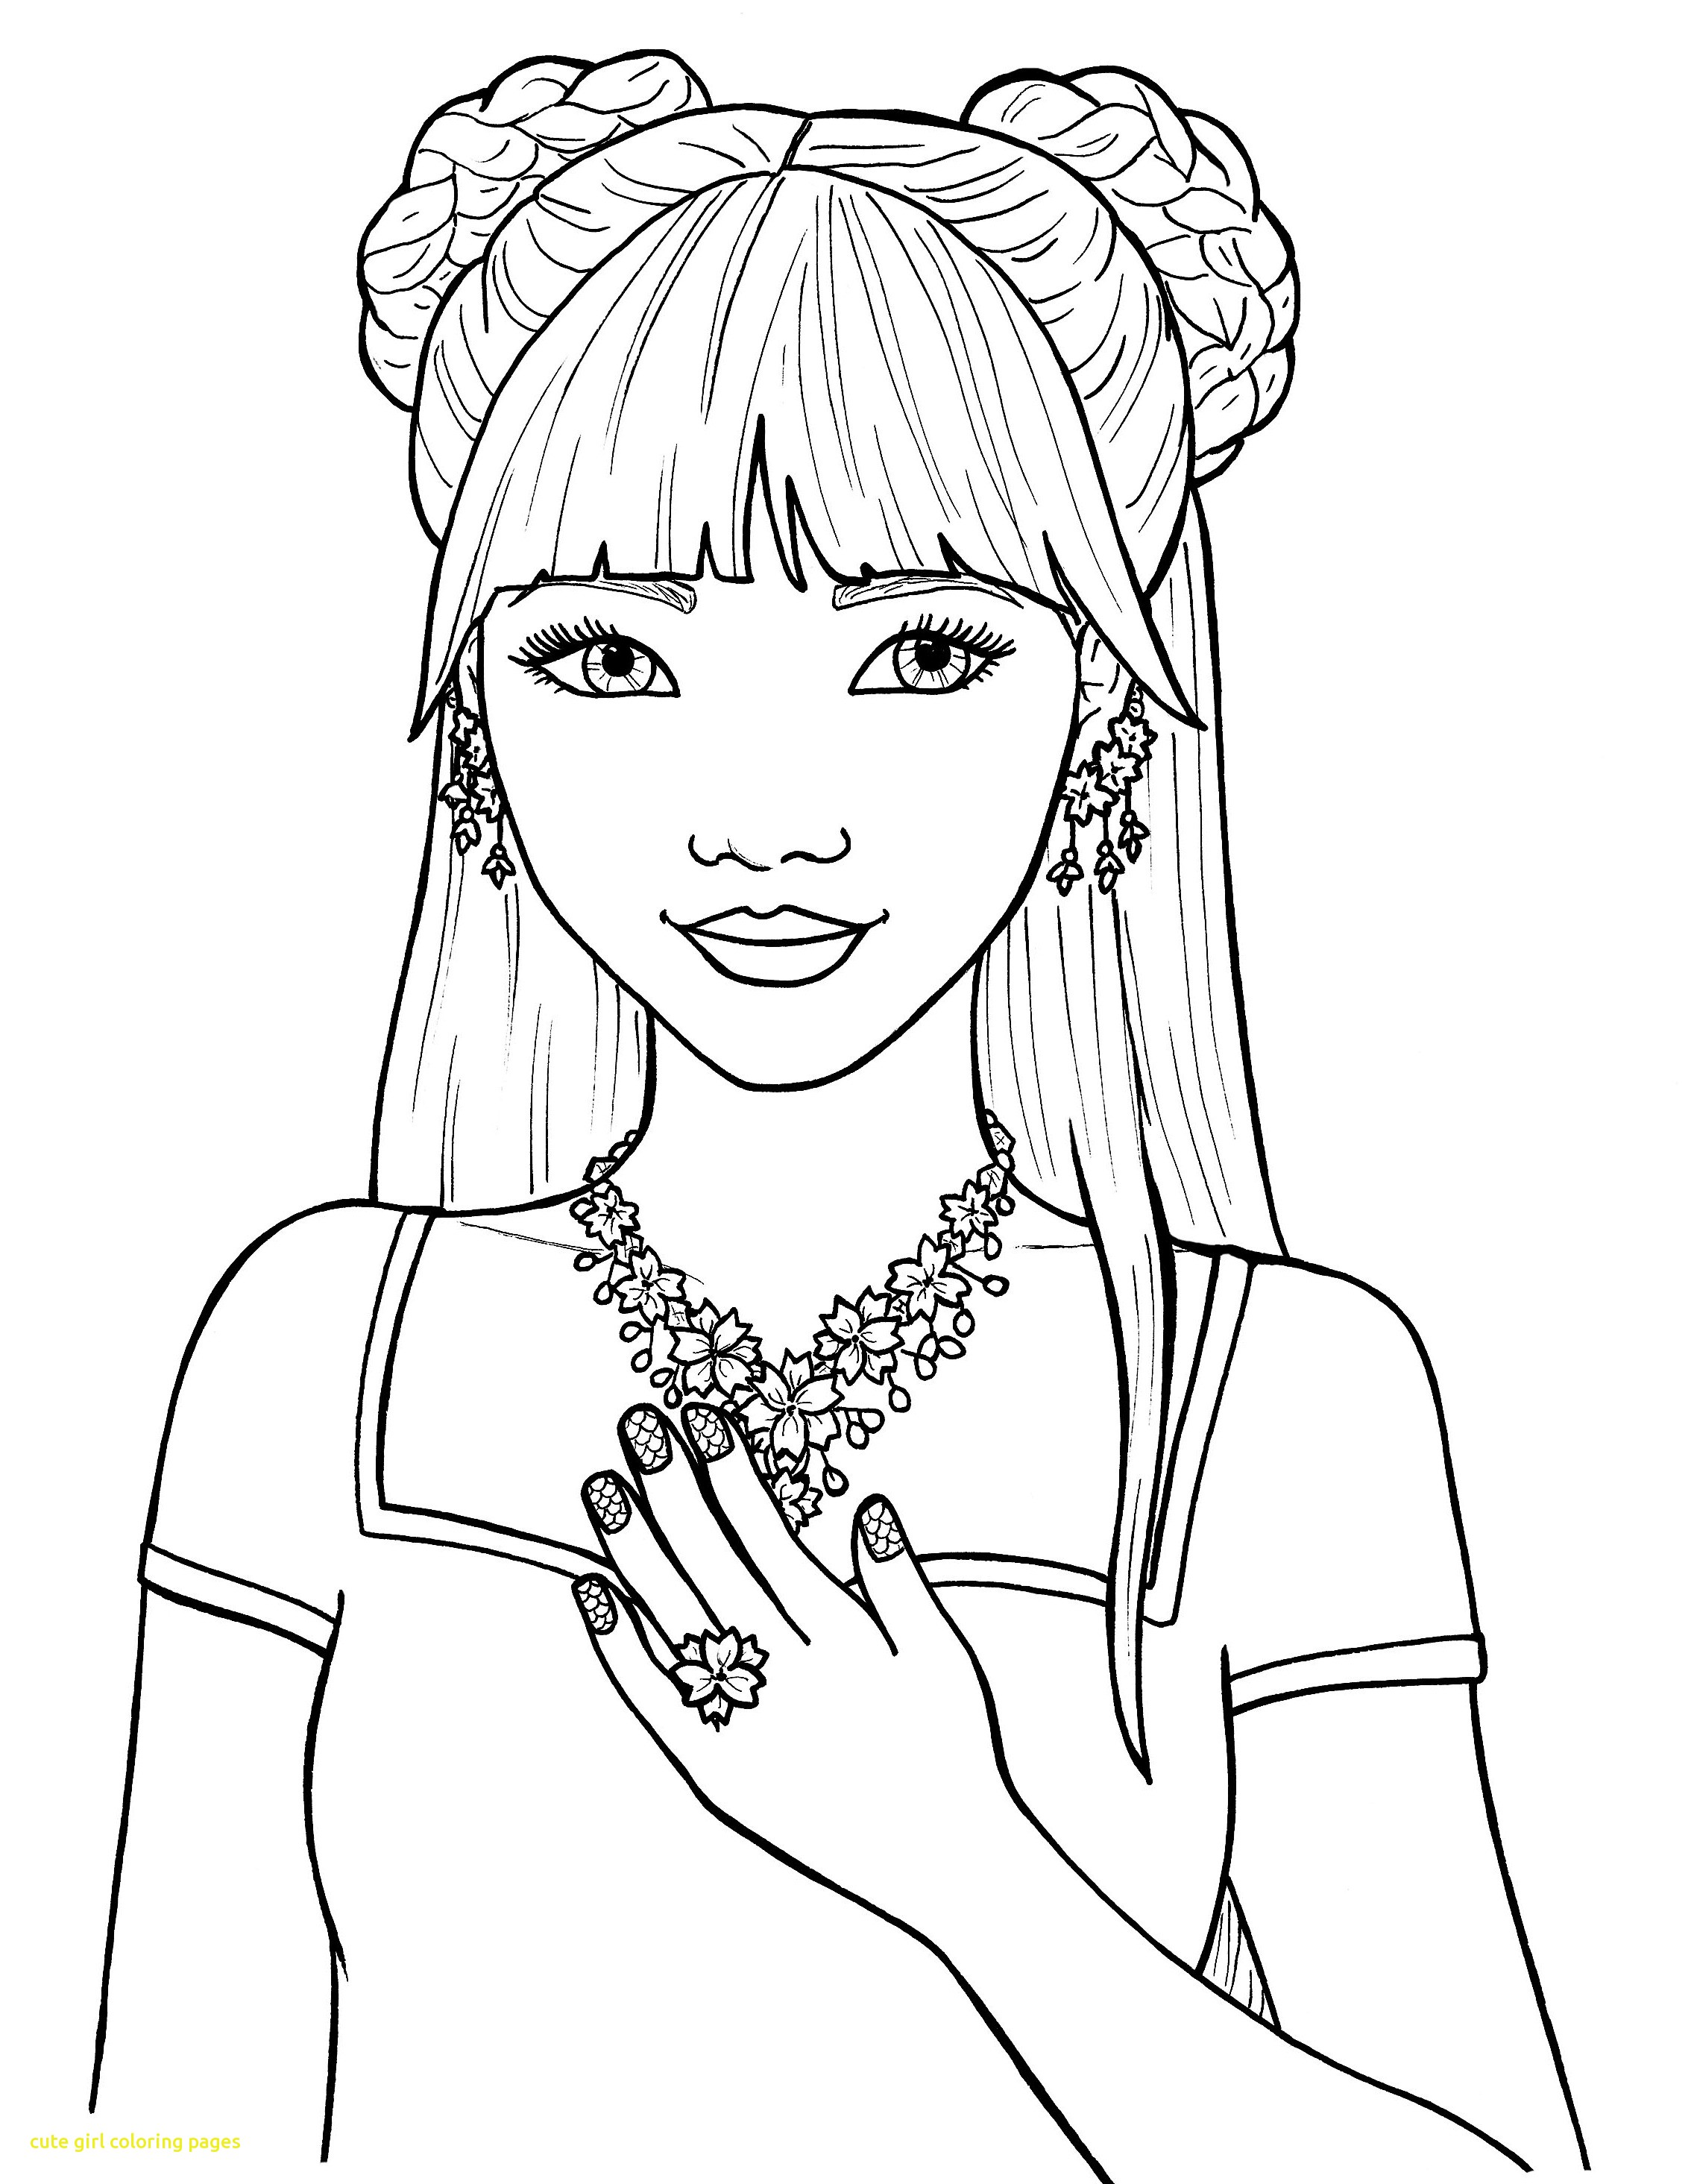 girl coloring pages free coloring pages for girls best coloring pages for kids girl coloring free pages